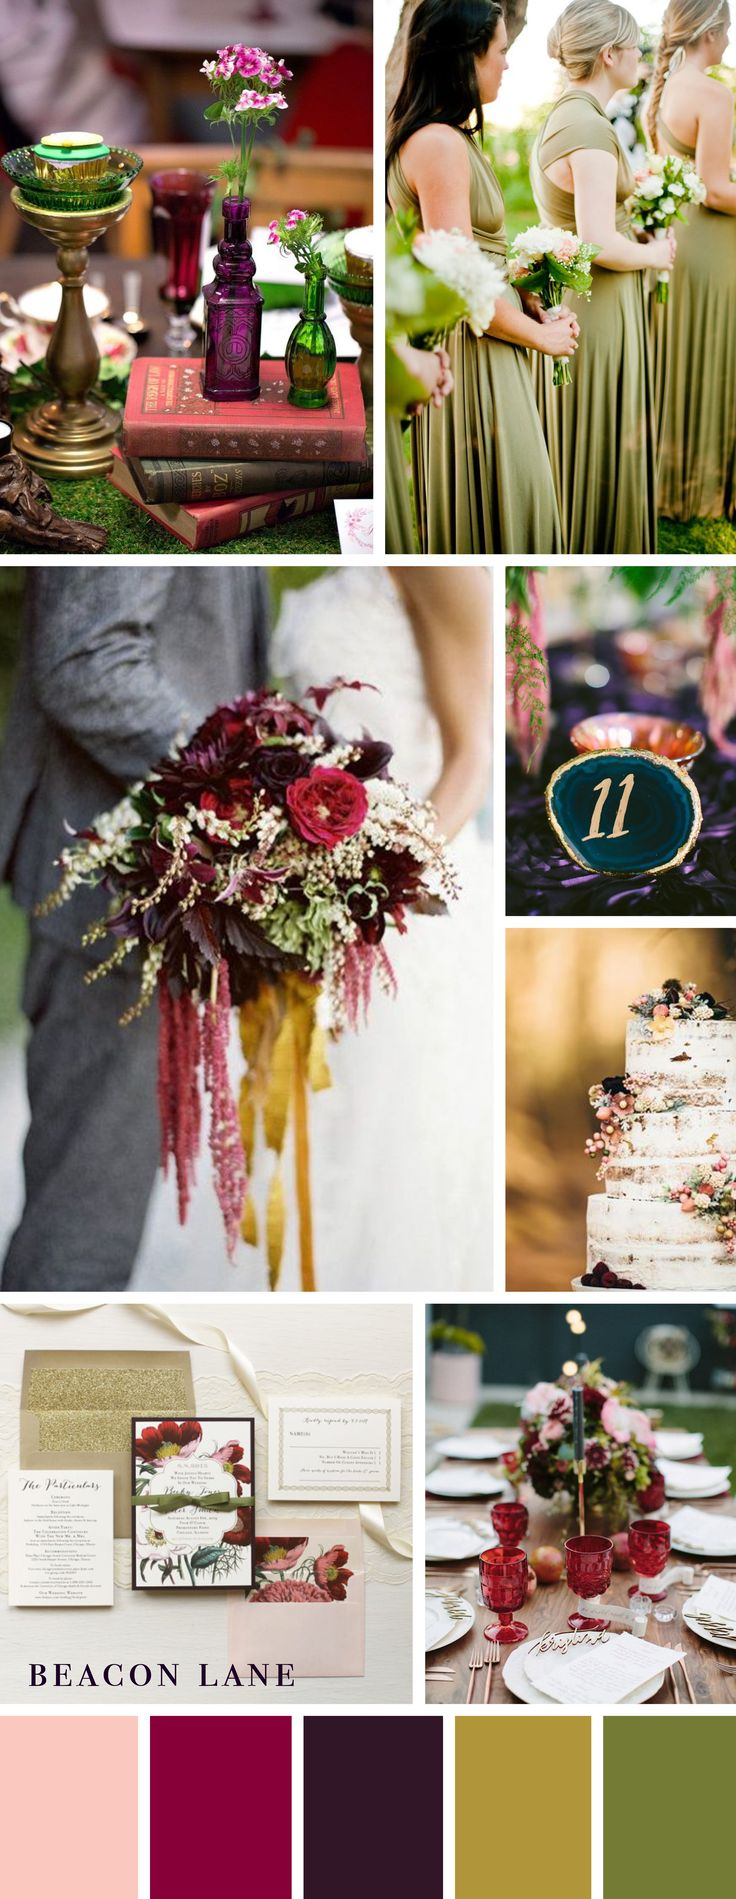 Jewel Toned Wedding Color Inspiration By Beacon Lane. Check out more inspiration here: http://www.beaconln.com/blog/jewel-toned-wedding-color-inspiration/